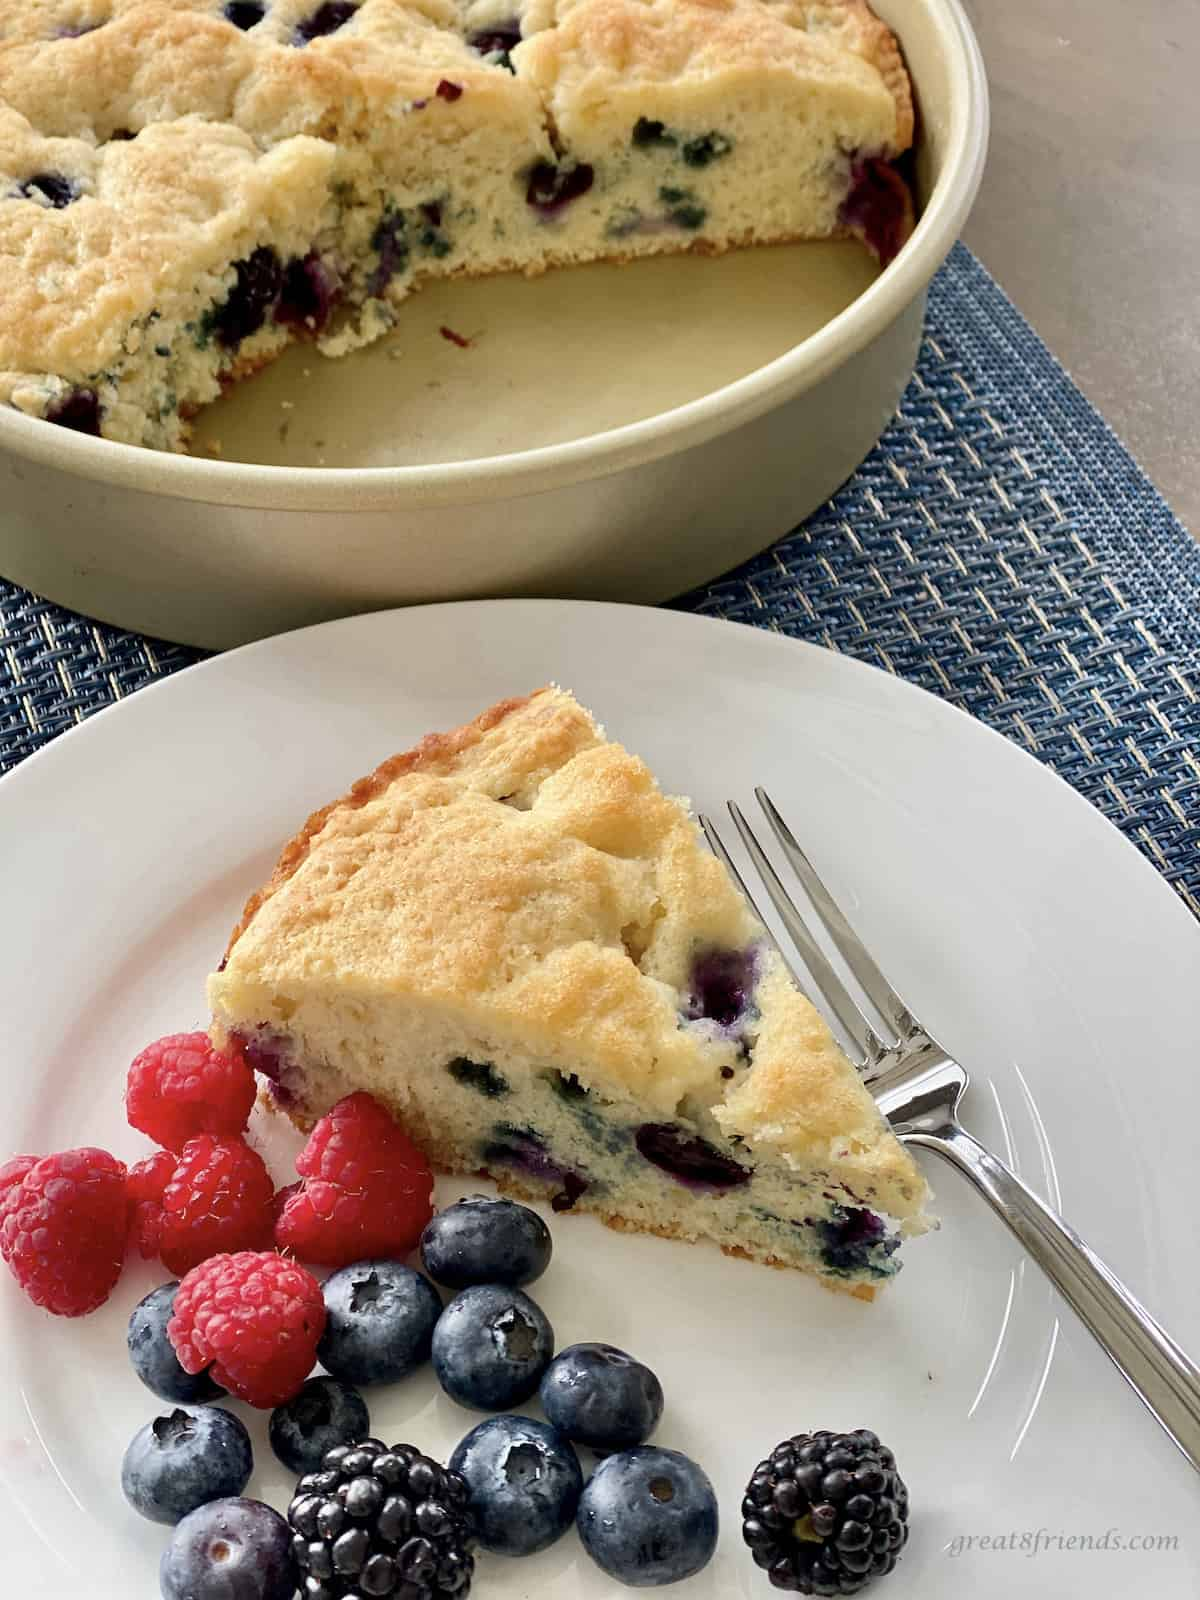 A piece of blueberry coffee cake on a plate with fresh blueberries and raspberries with a round cake pan with a piece of the coffee cake cut out of it.